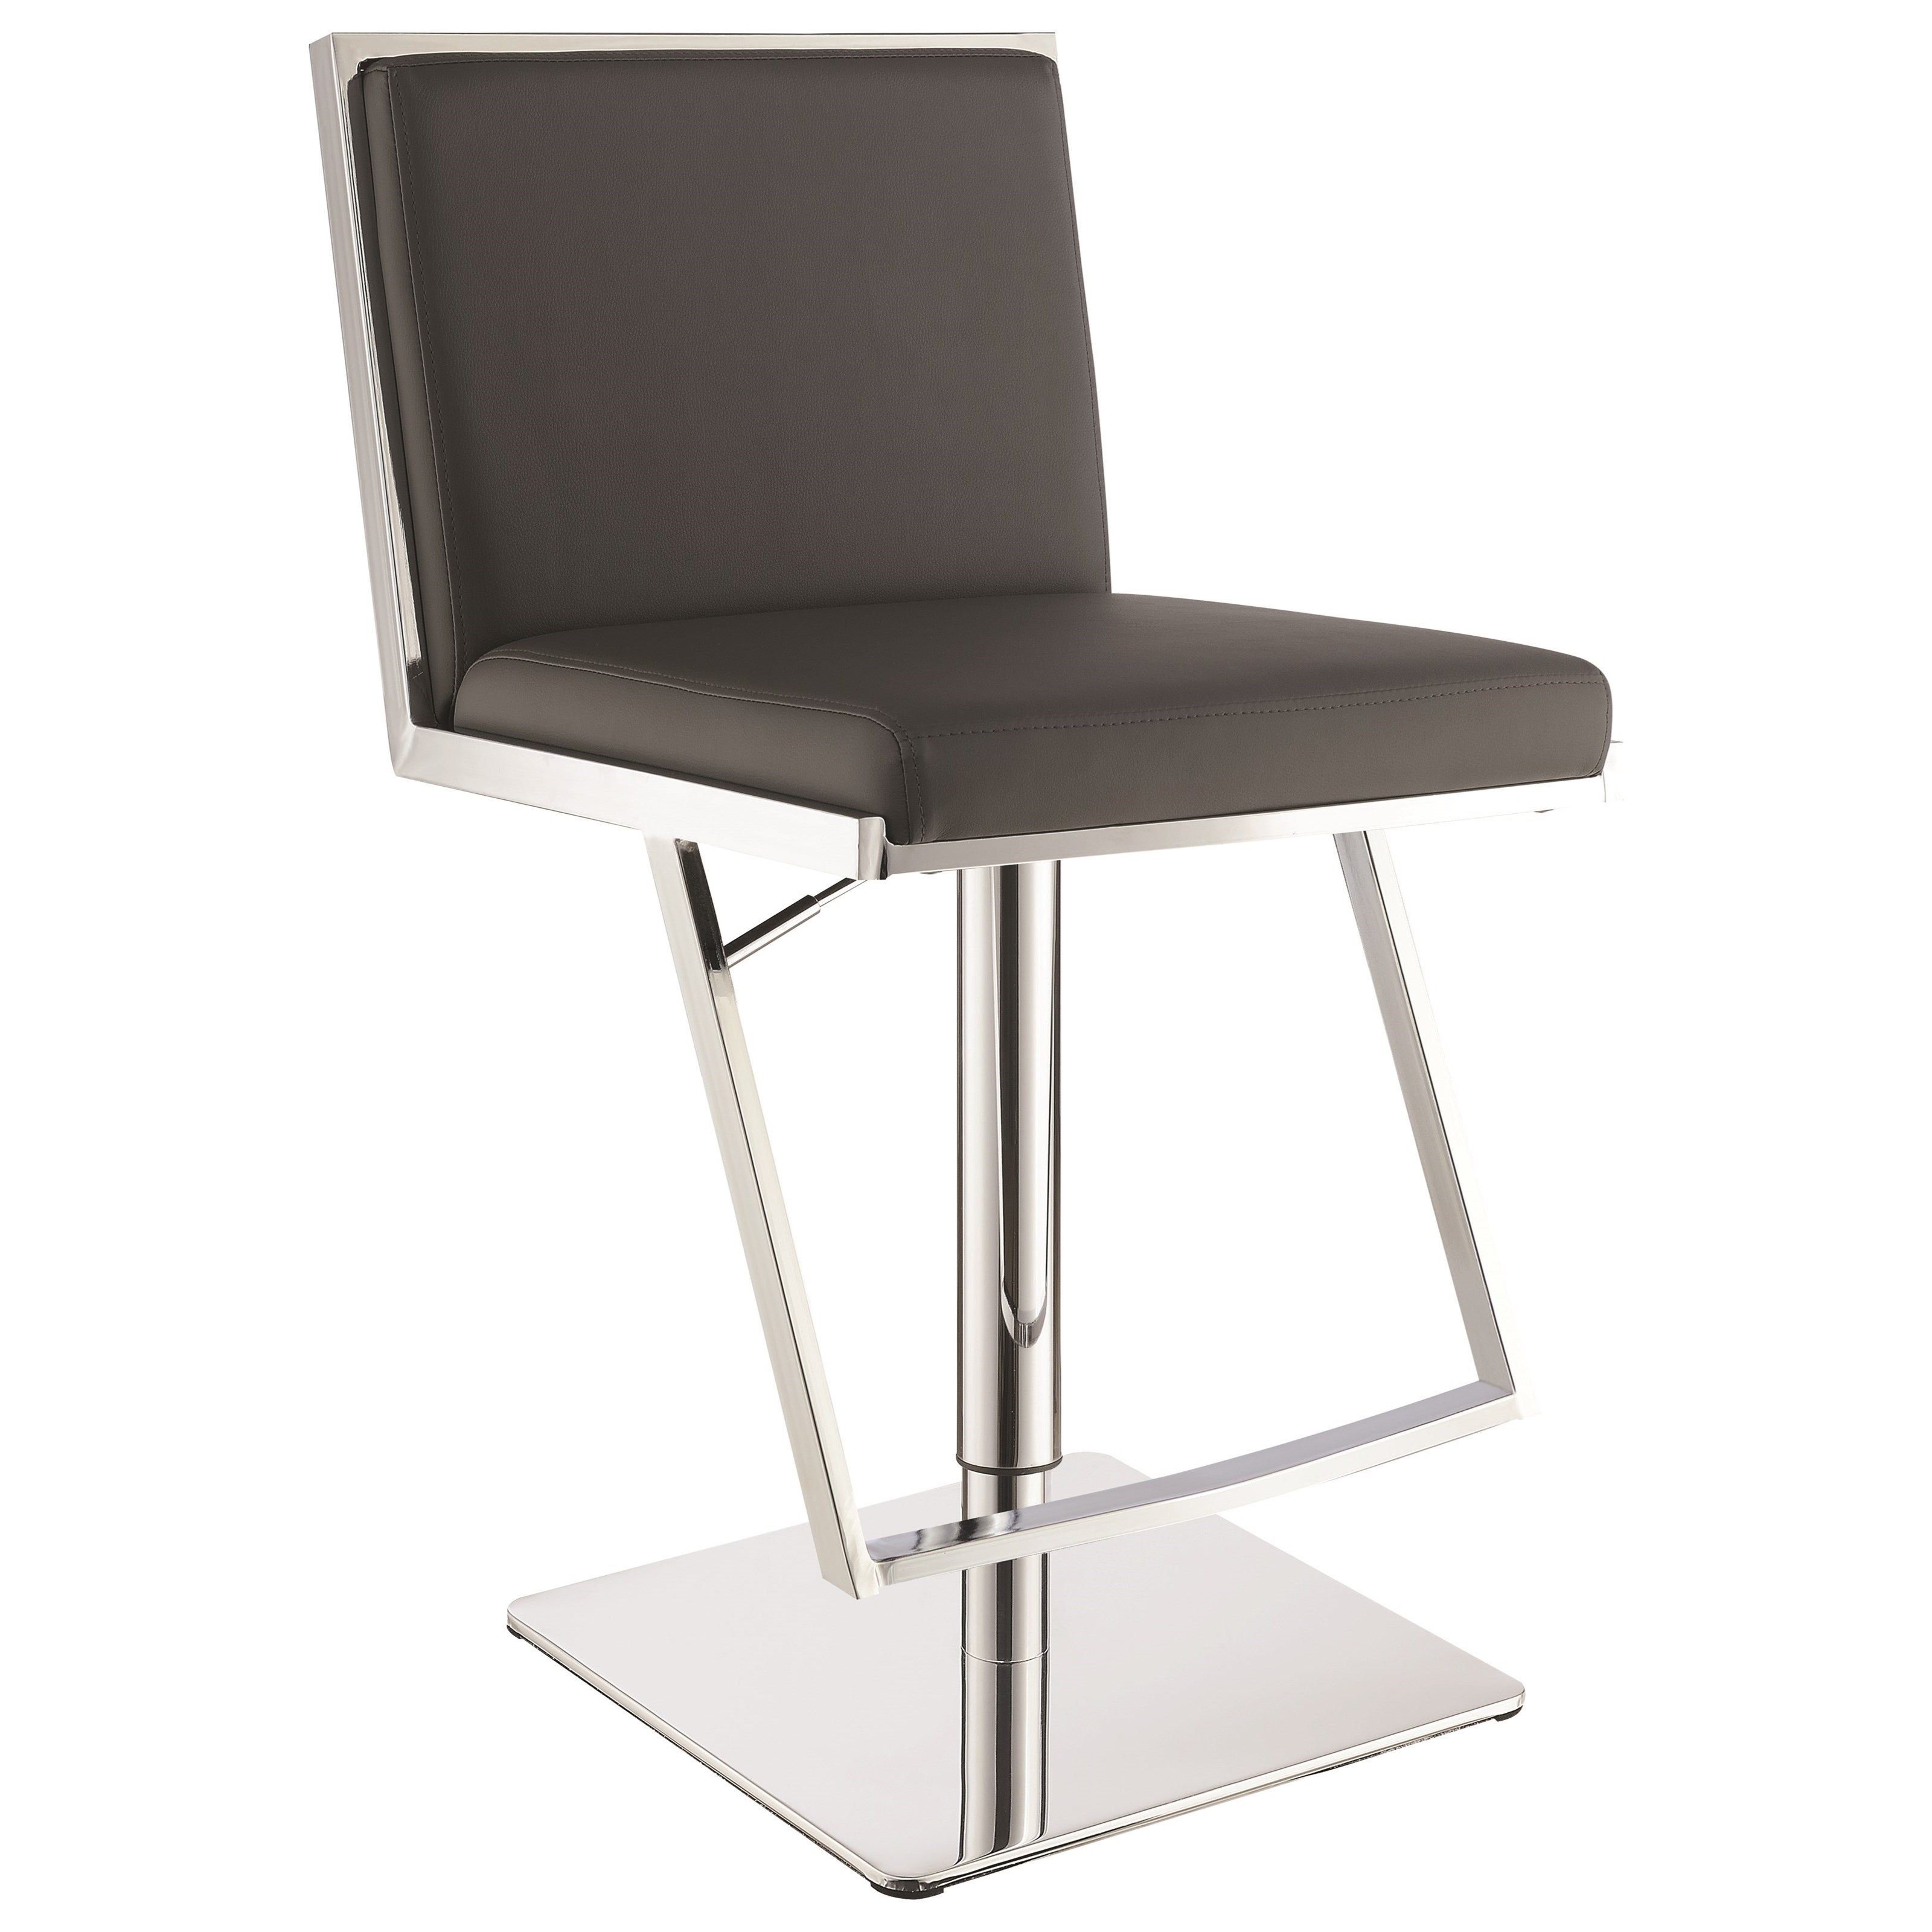 Scott Living 10307 Bar Stool - Item Number: 103077